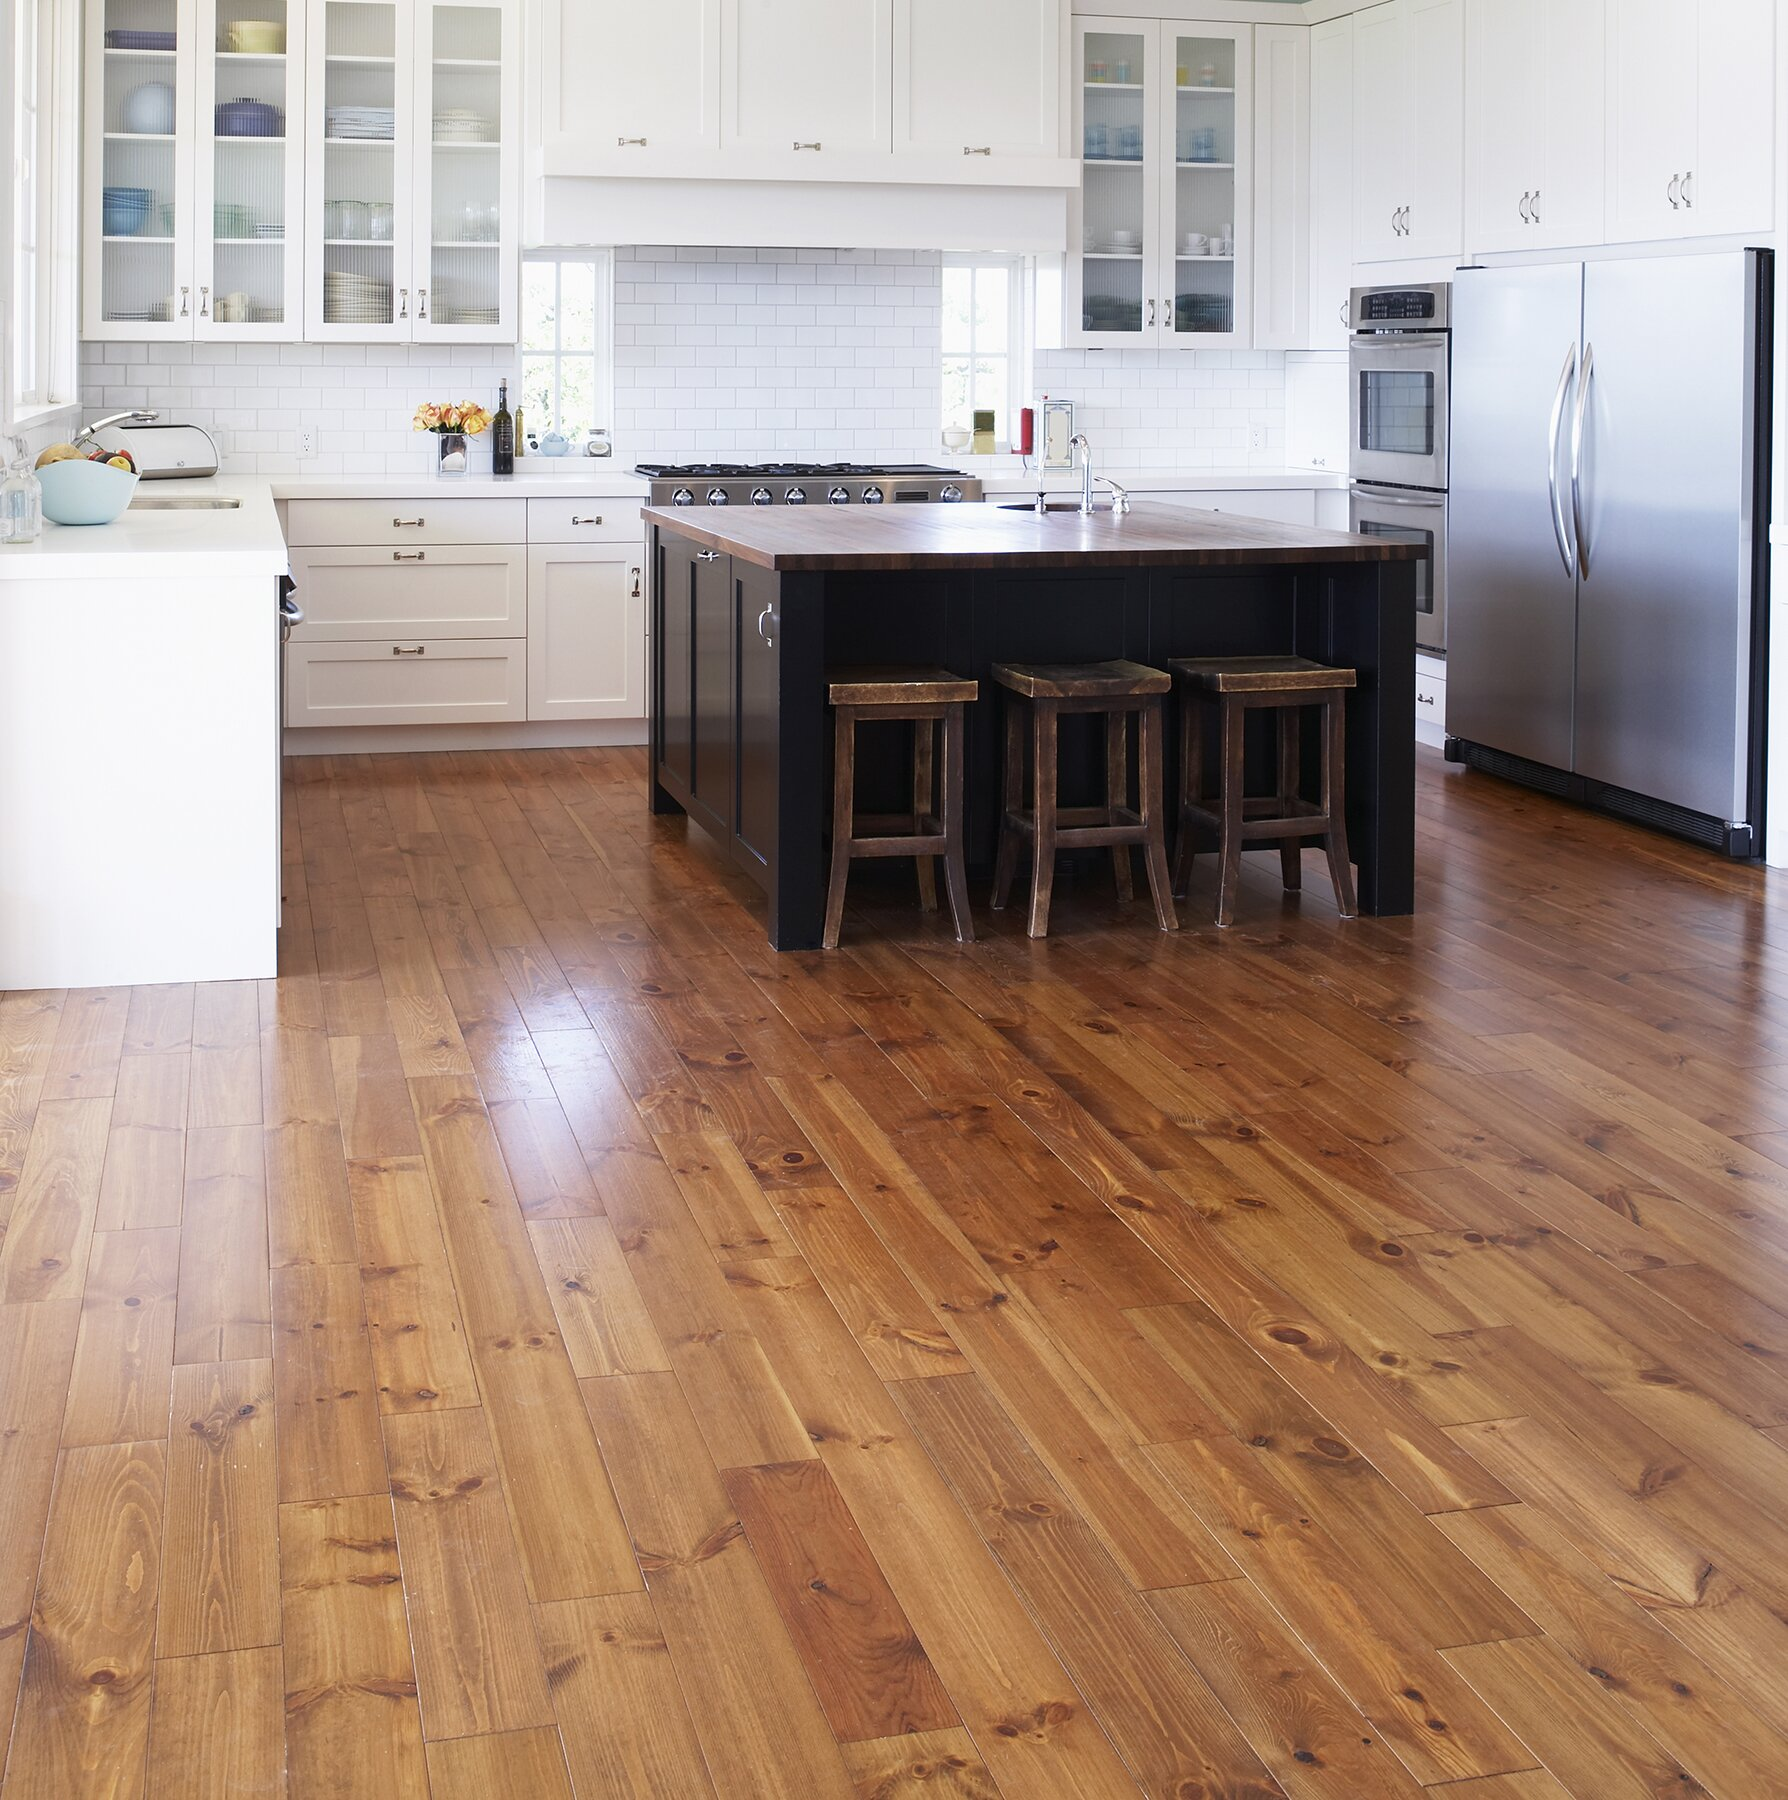 10 Expert Tips To Care For Wood Floors